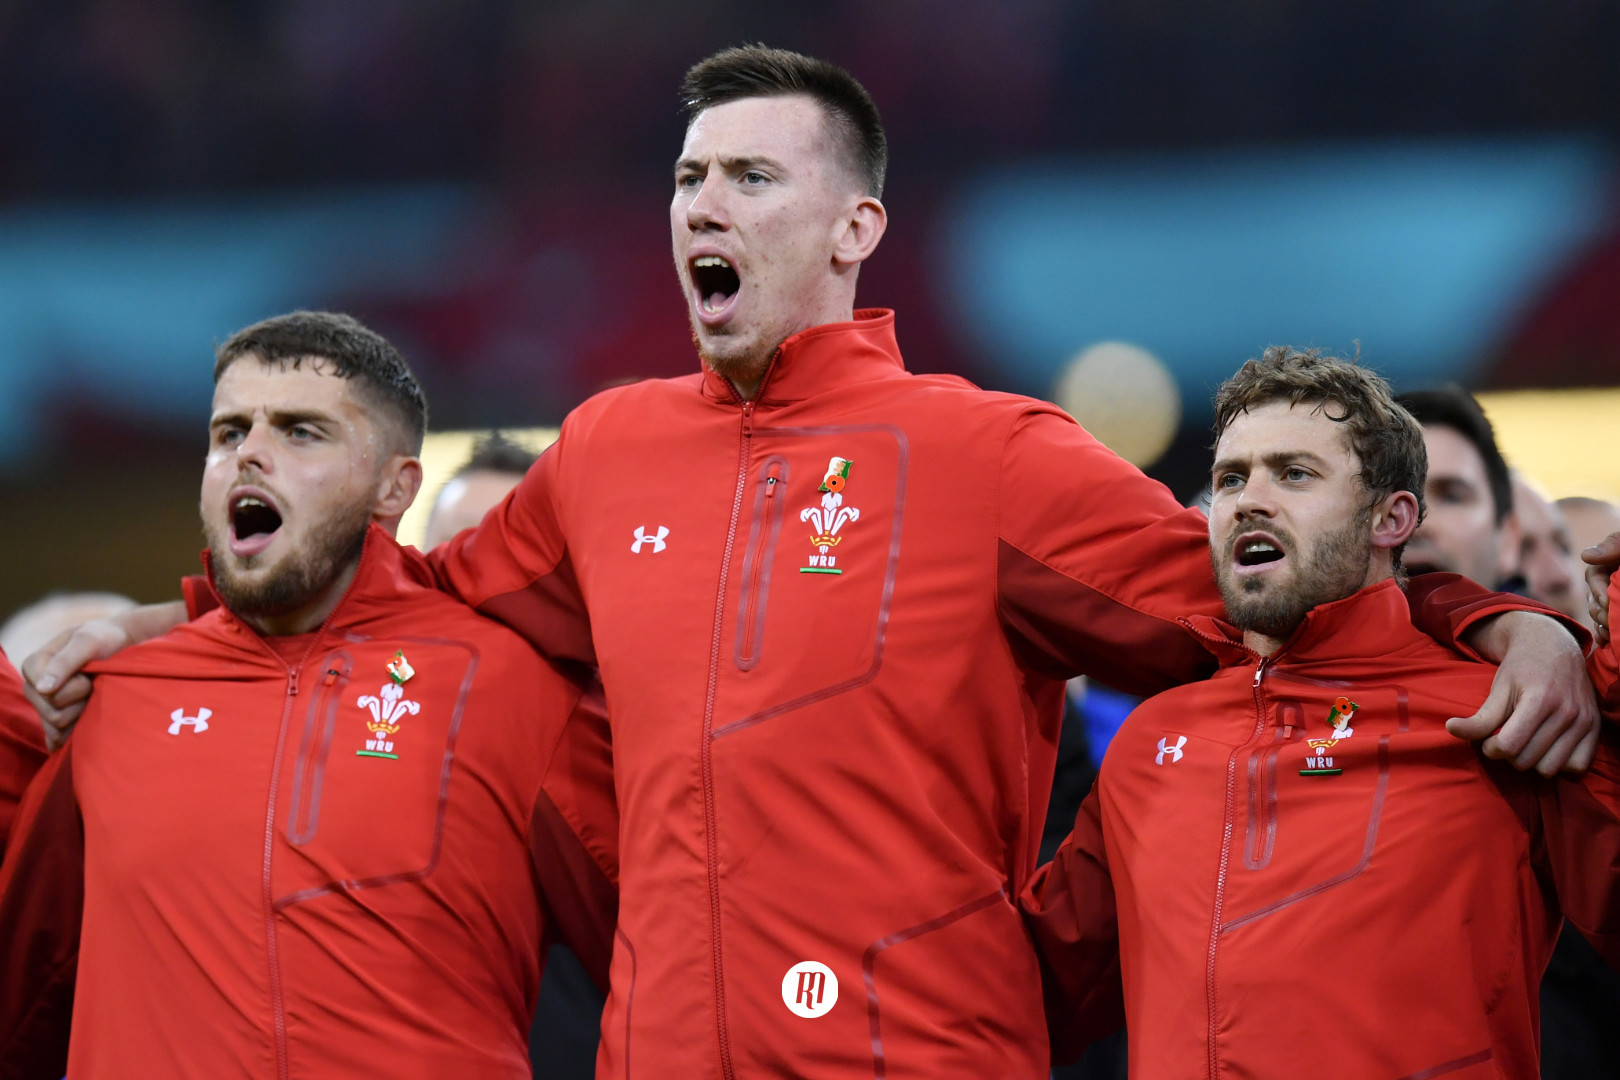 Key Matchups for Super Saturday that will decide the 2019 Six Nations Champions